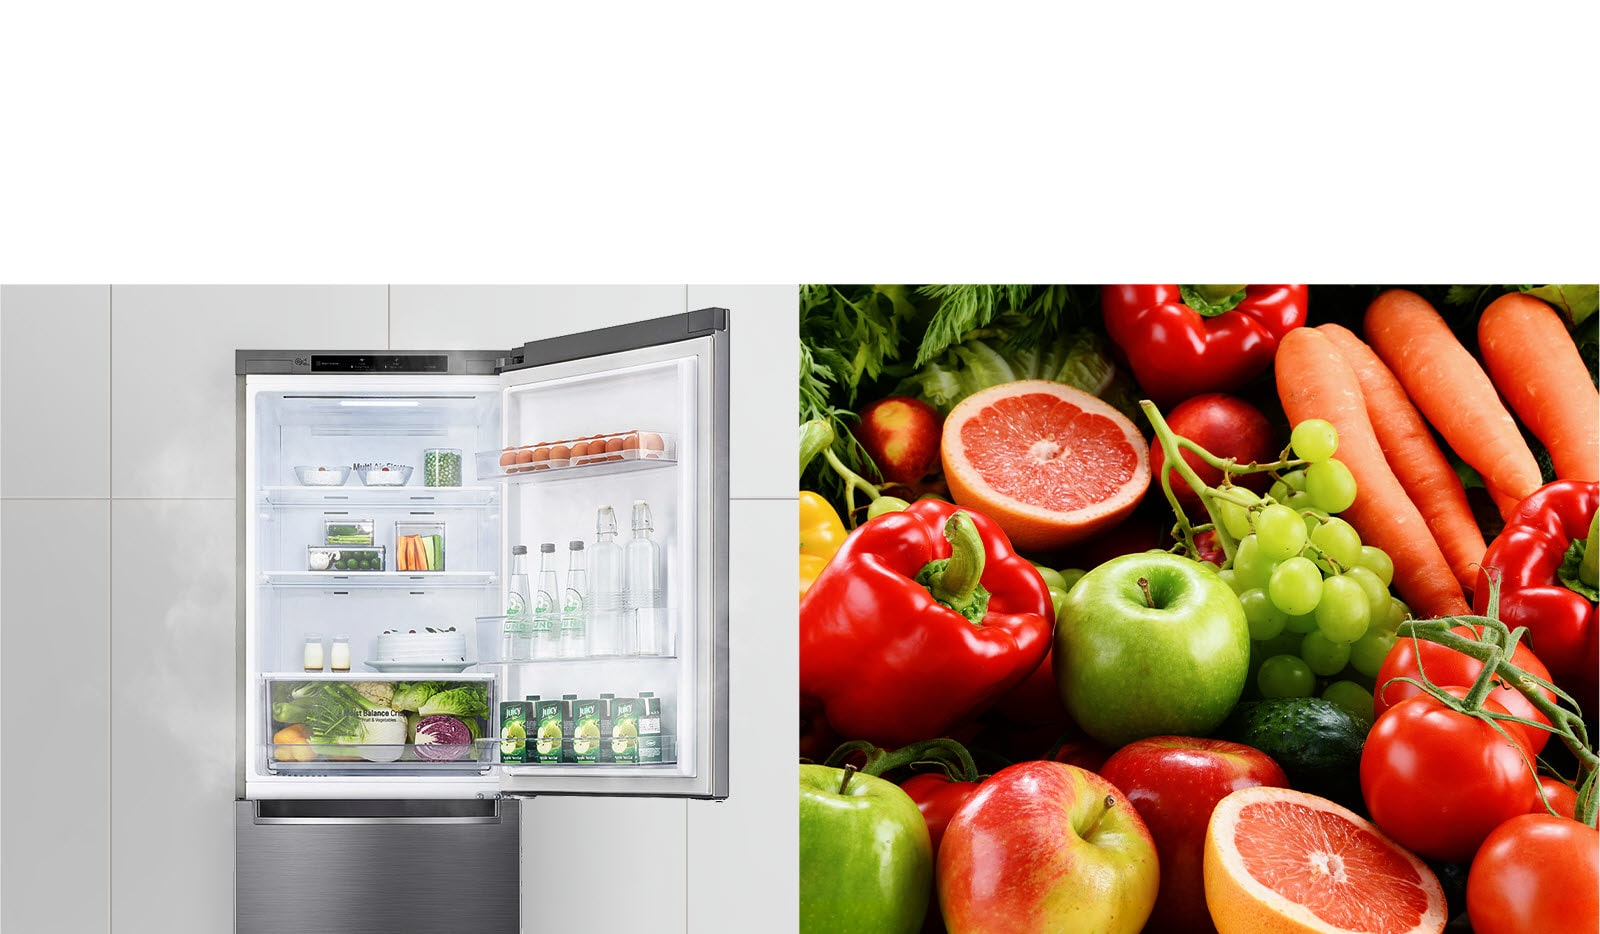 The first image shows the refrigerator with the top door open and filled with drinks and produce. The second image shows bright and vivid fruits and vegetables in a group.